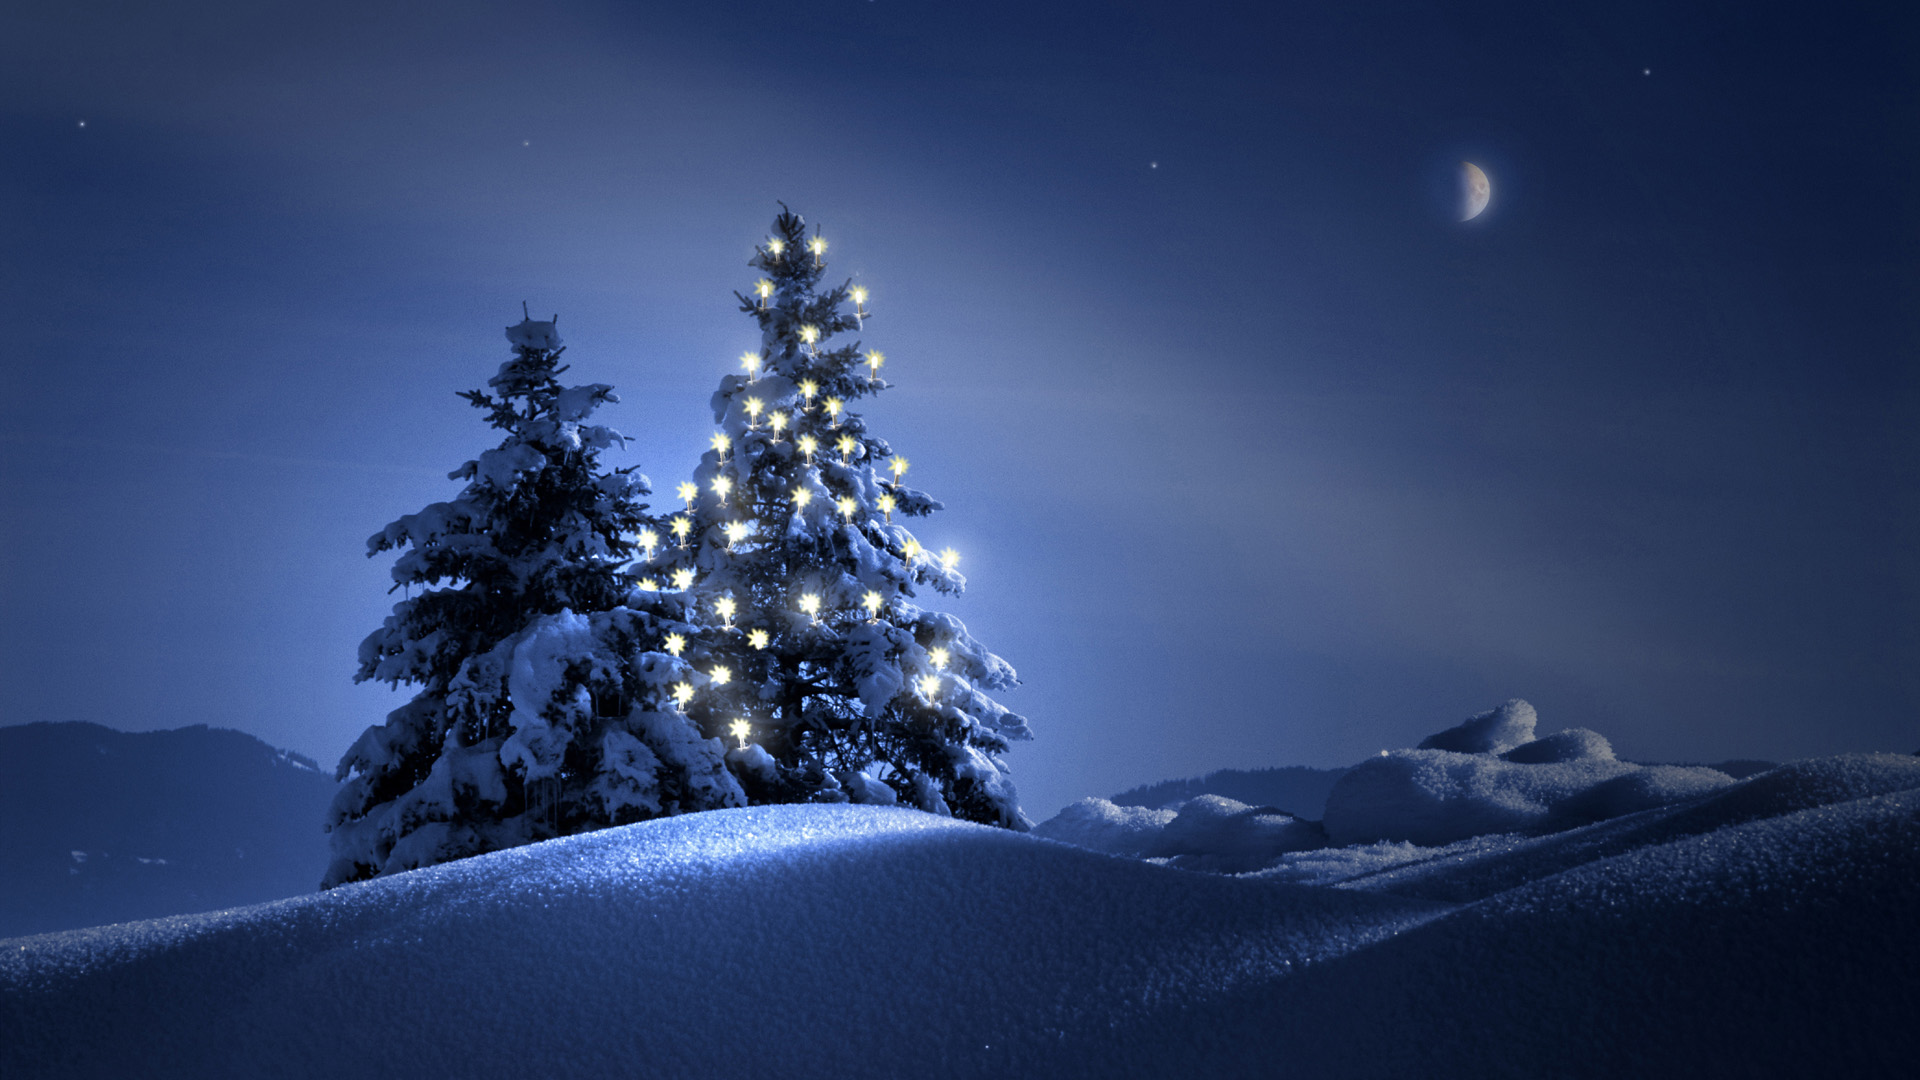 download winter scenes wallpaper which is under the winter 1920x1080